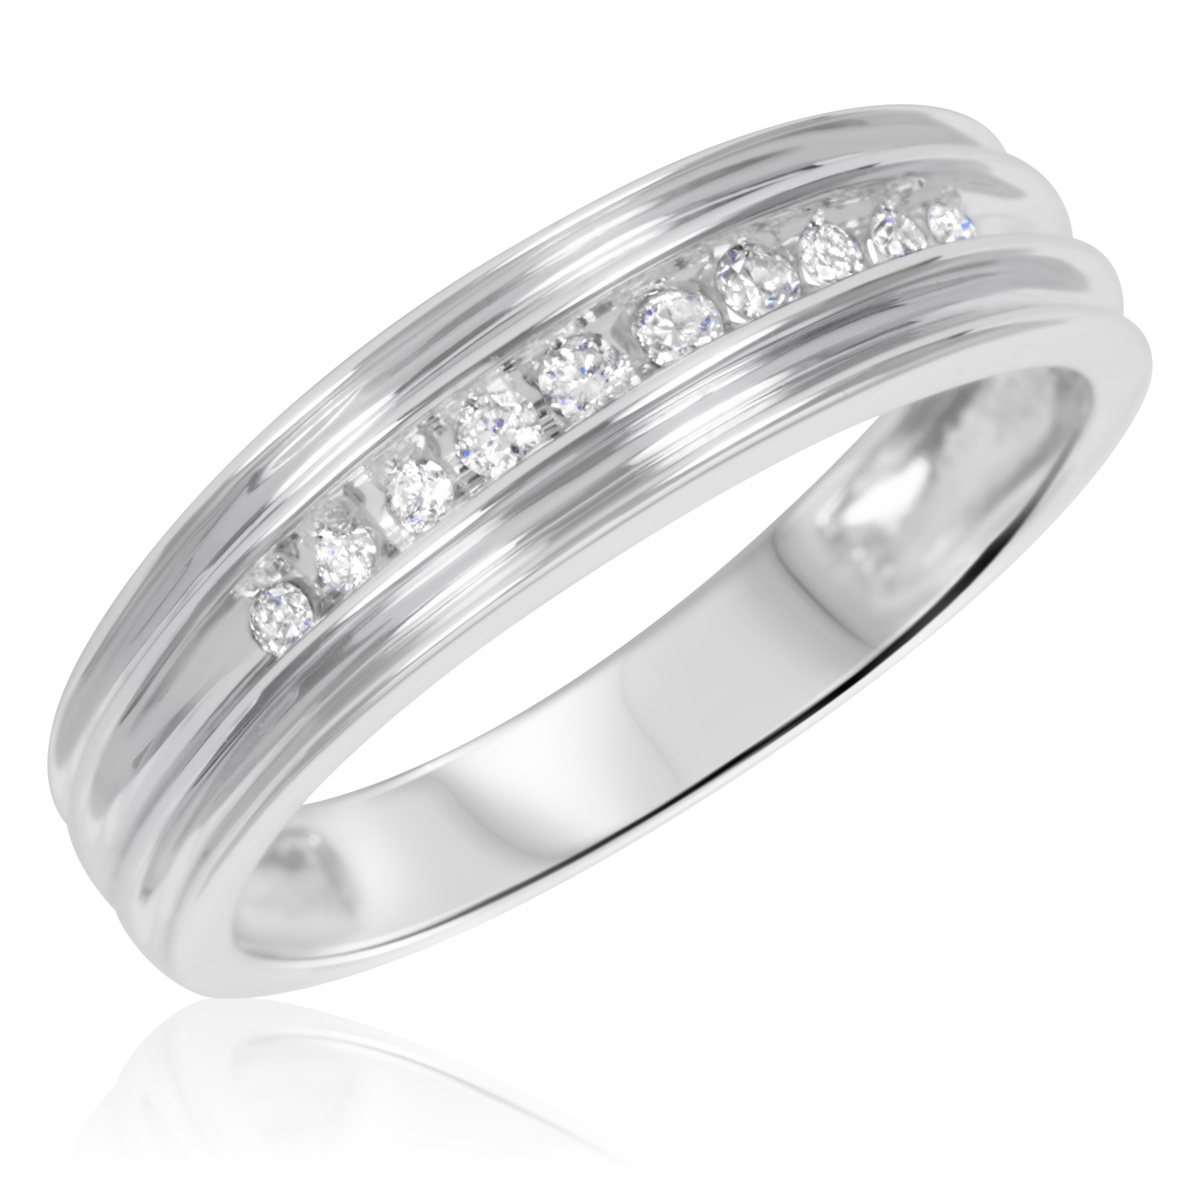 38 carat tw diamond his and hers wedding rings 10k white gold my trio rings wb502w10k